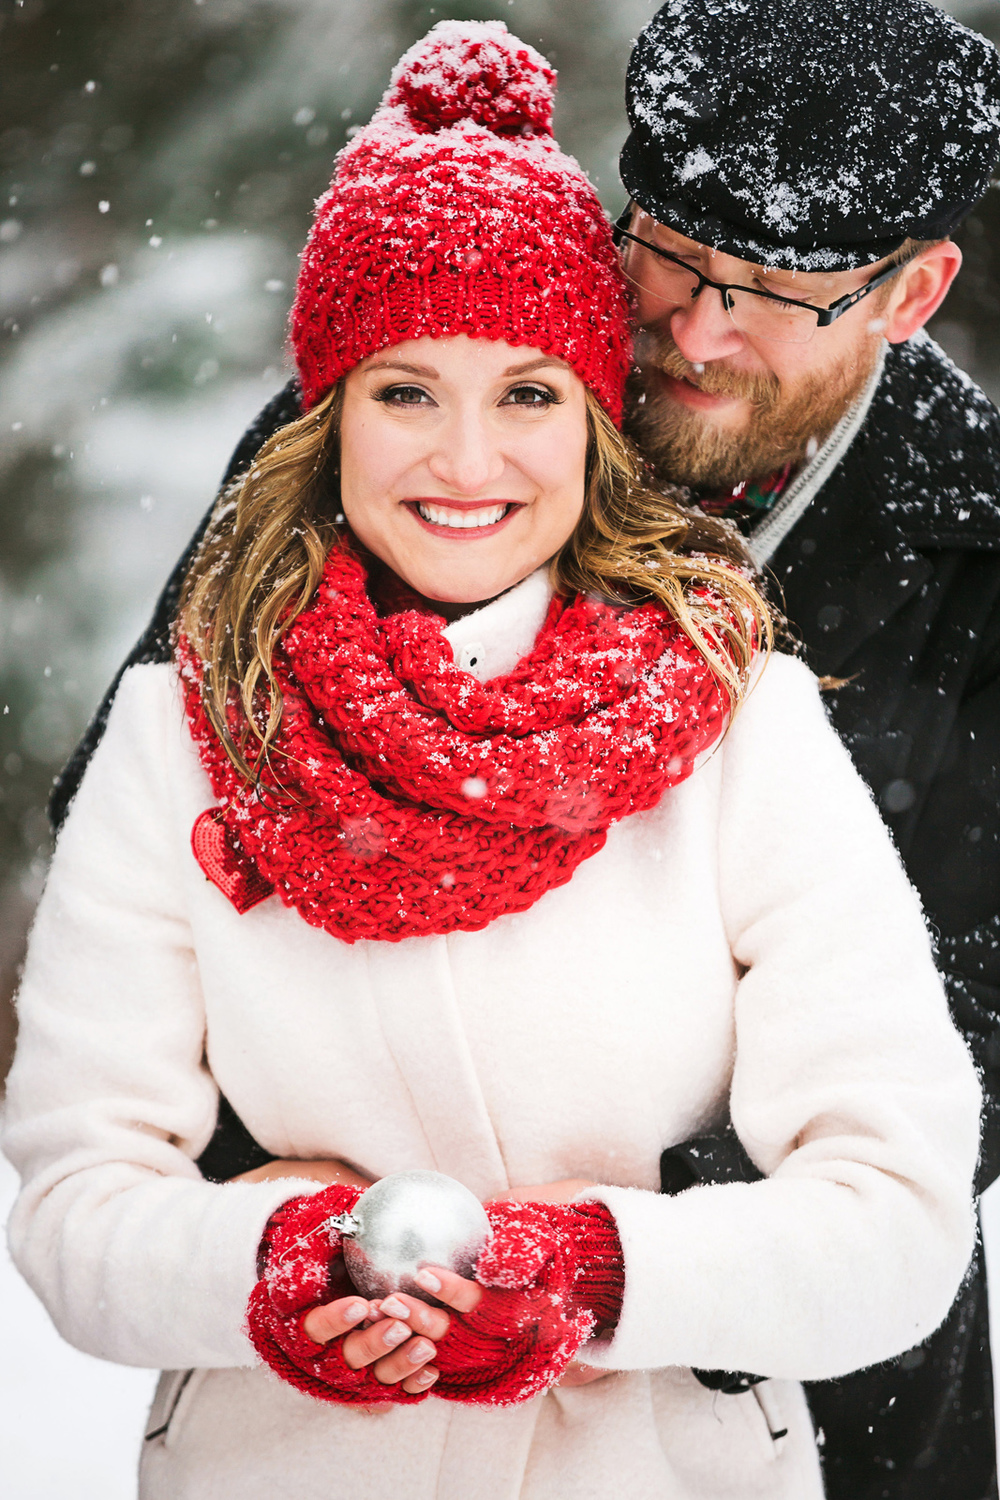 Oldani-Photography-St-Louis-Forest-Park-Engagement-Photos-Snow_20141116_16272490.jpg